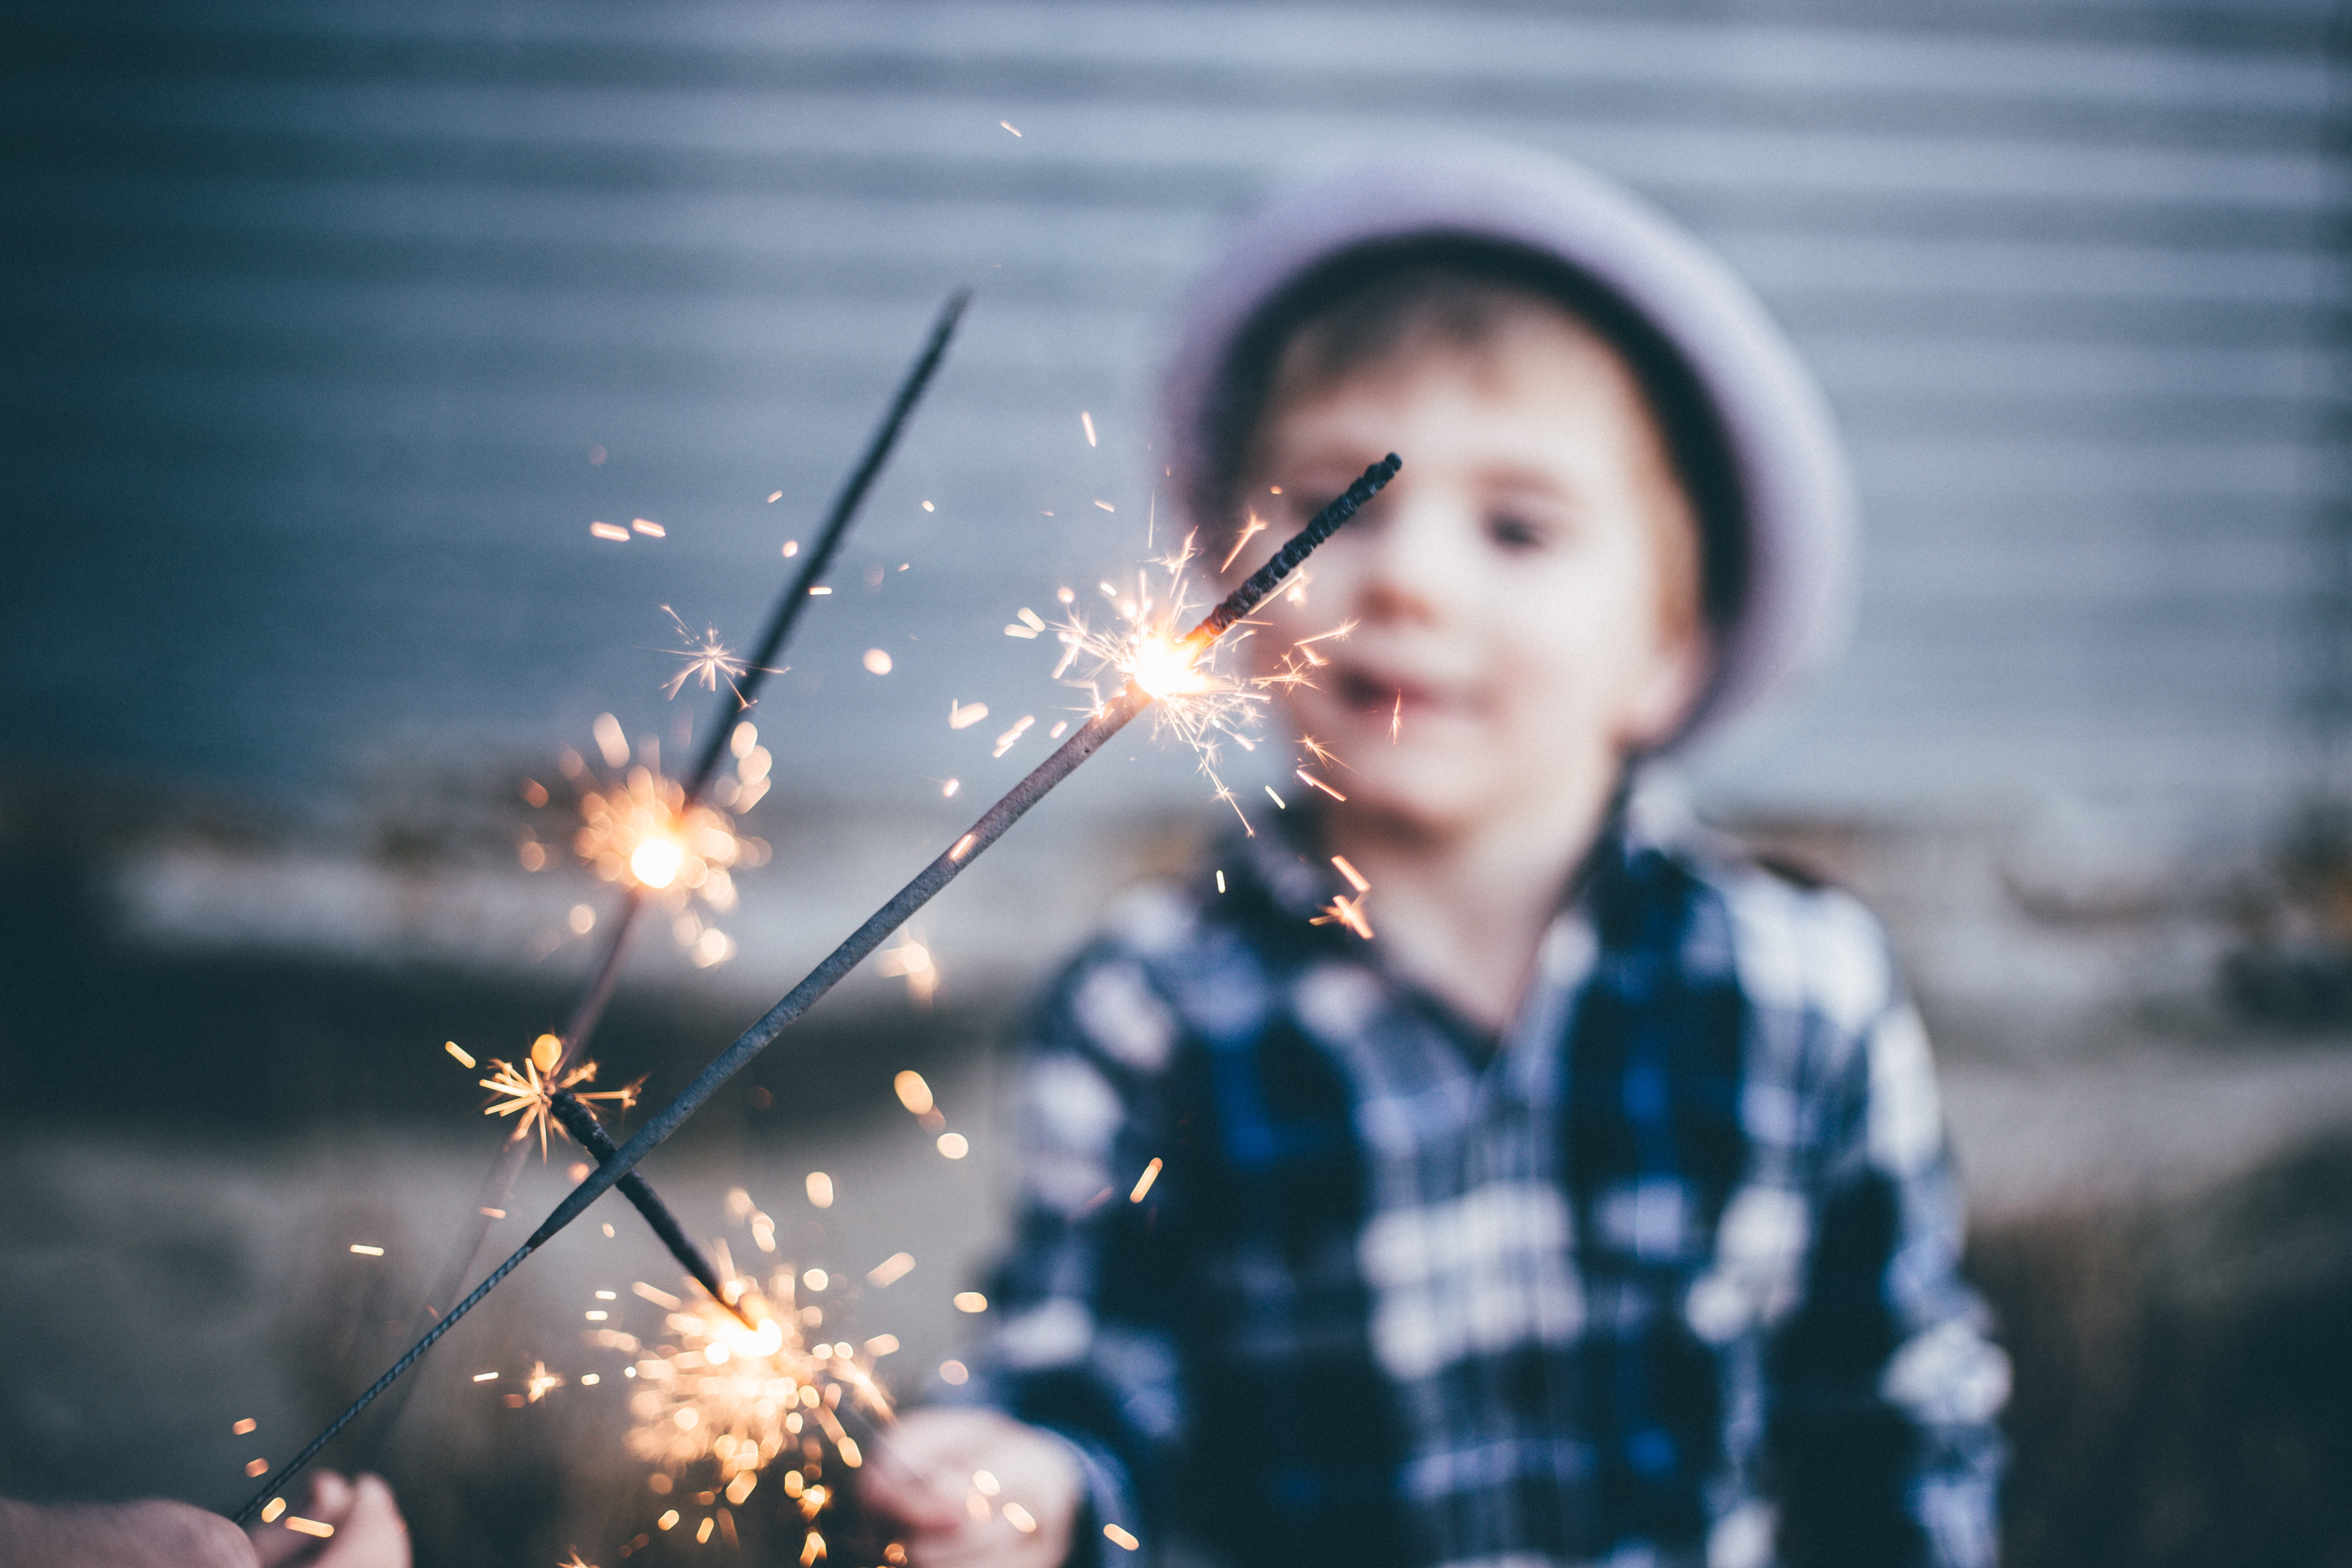 closeup photo of boy wearing blue and white plaid sport shirt holding firework